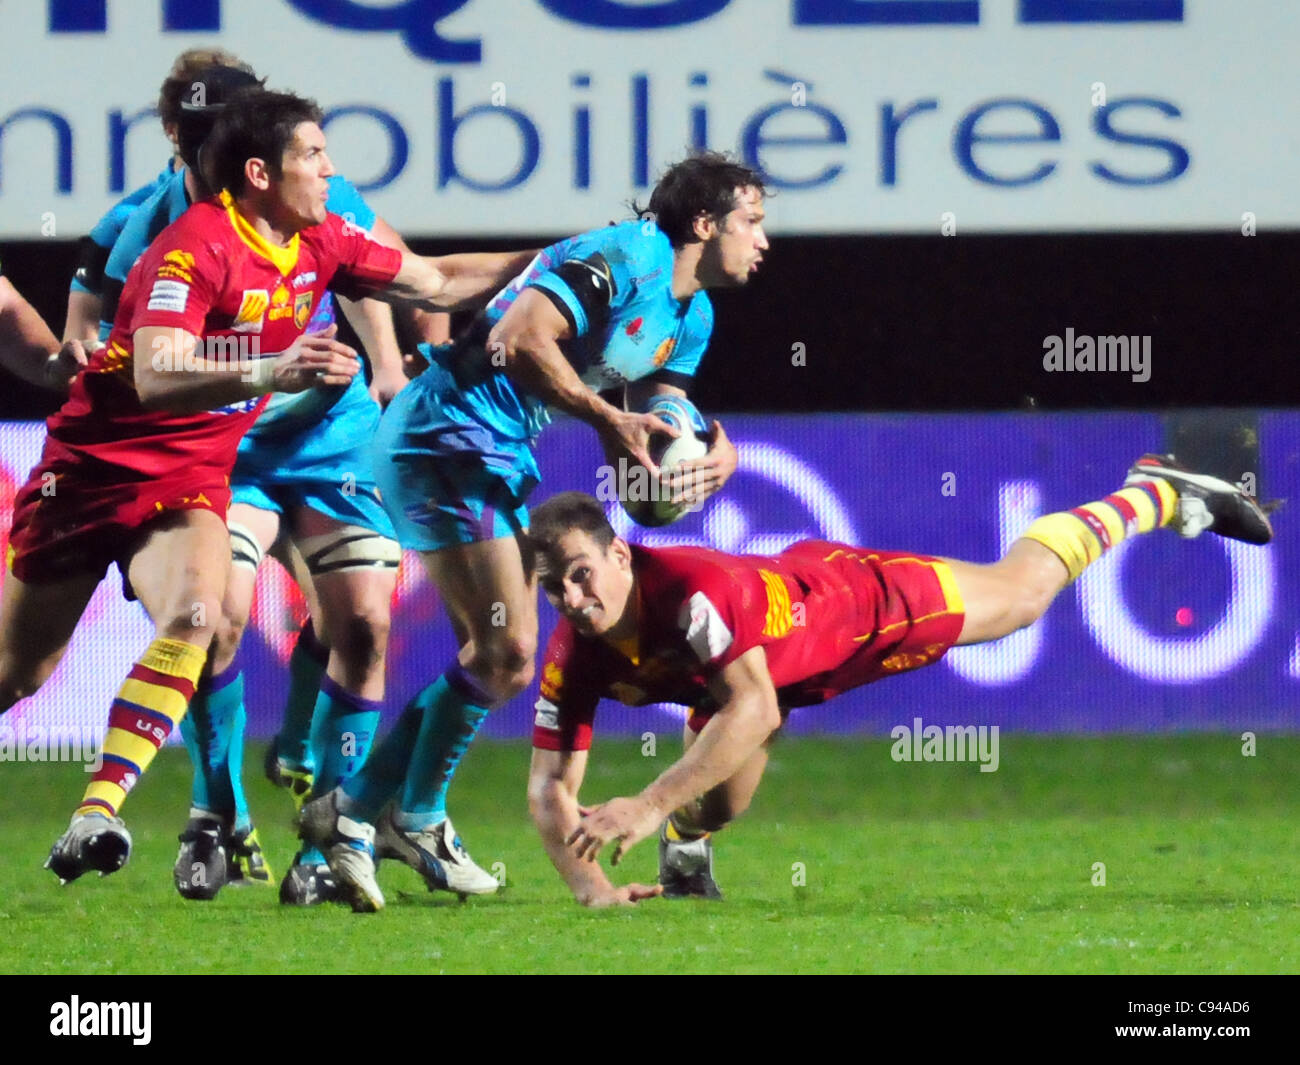 Amiln Challenge Cup, Pool 4: USAP - Exeter Chiefs (Perpignan, 11 Nov 11) - Stock Image